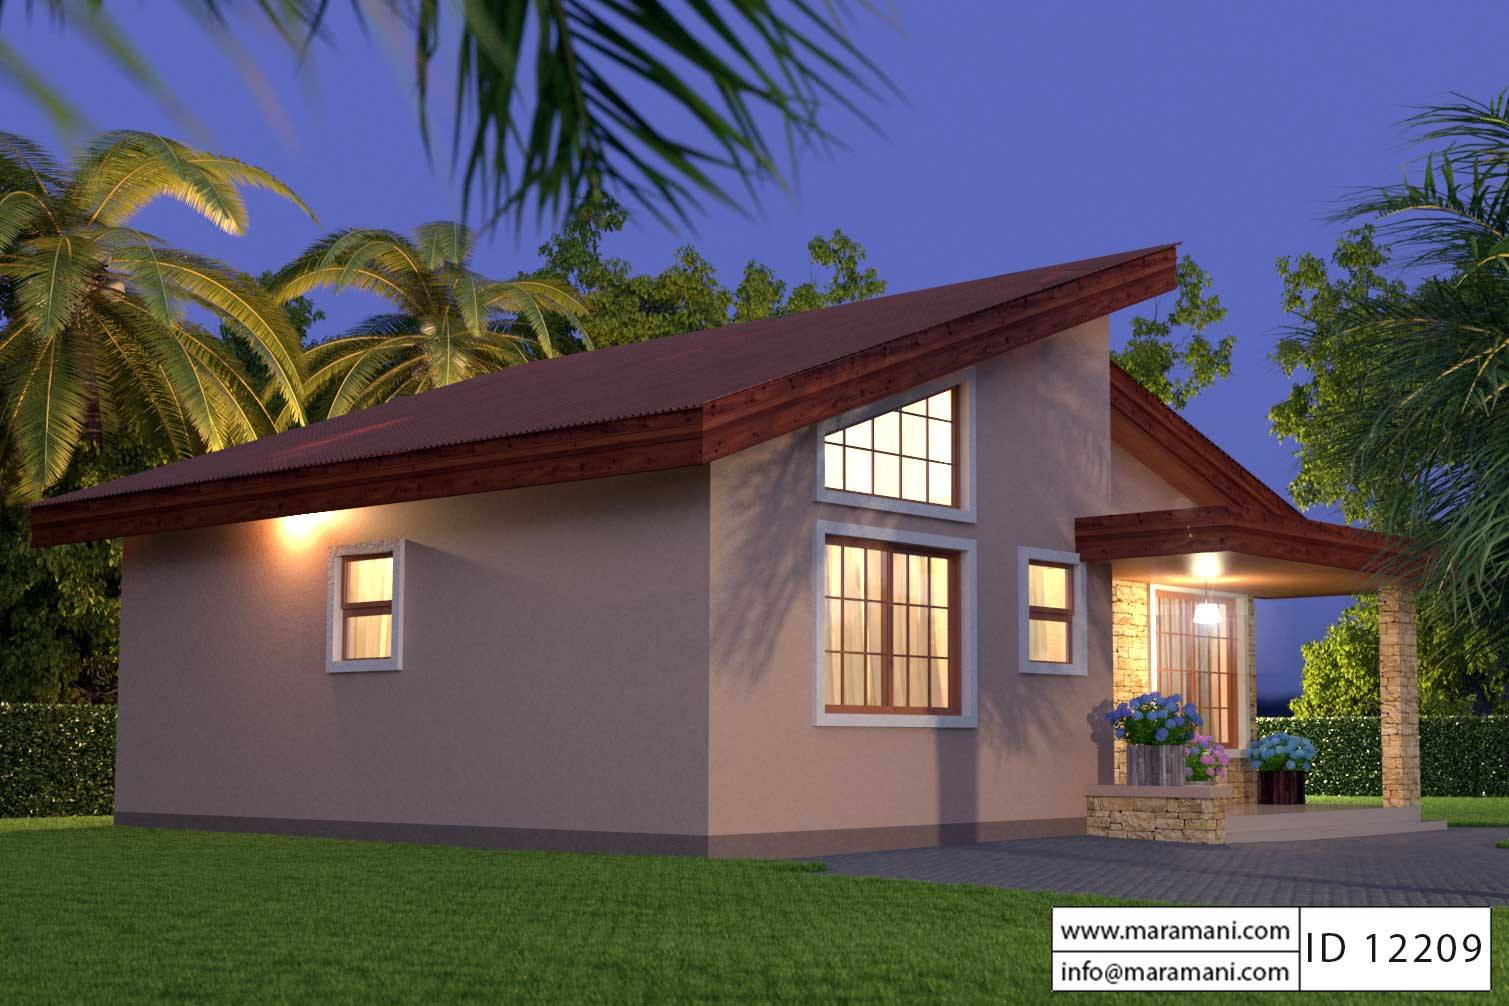 Bank Of Zambia Home 2 Bedroom House Plan Id 12209